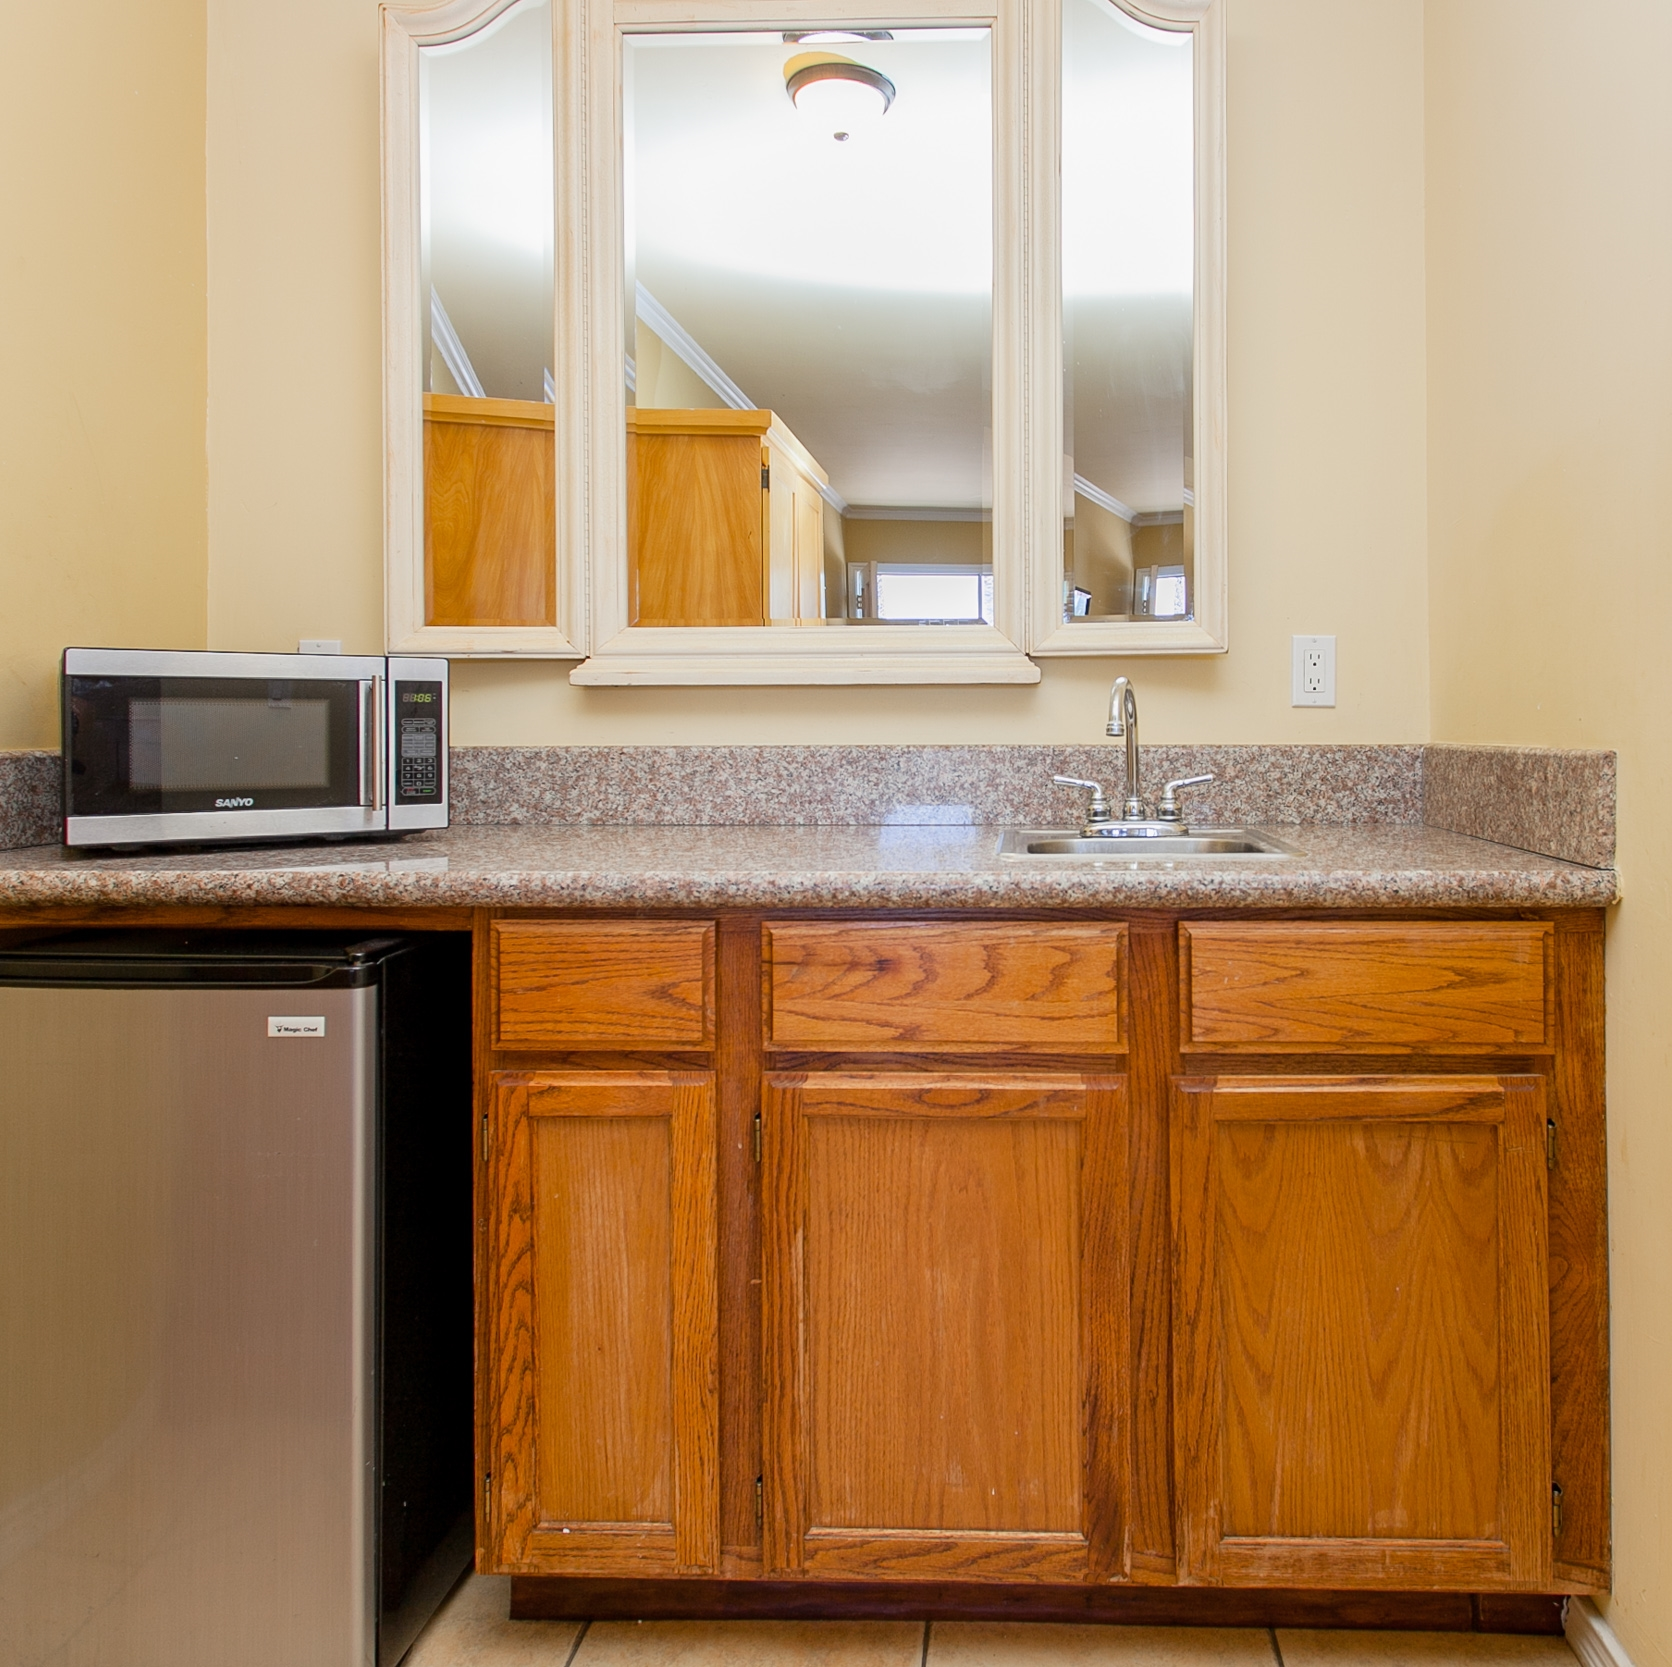 SUITES FEATURE: WET BAR, MICROWAVE OVENS AND MINI FRIDGE